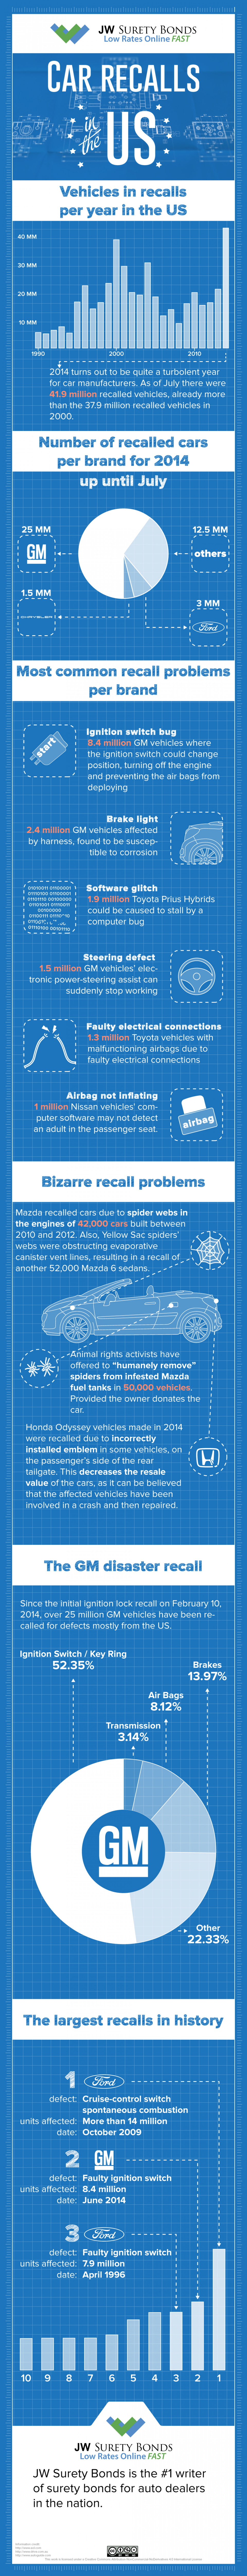 Car Recalls in the USA Infographic